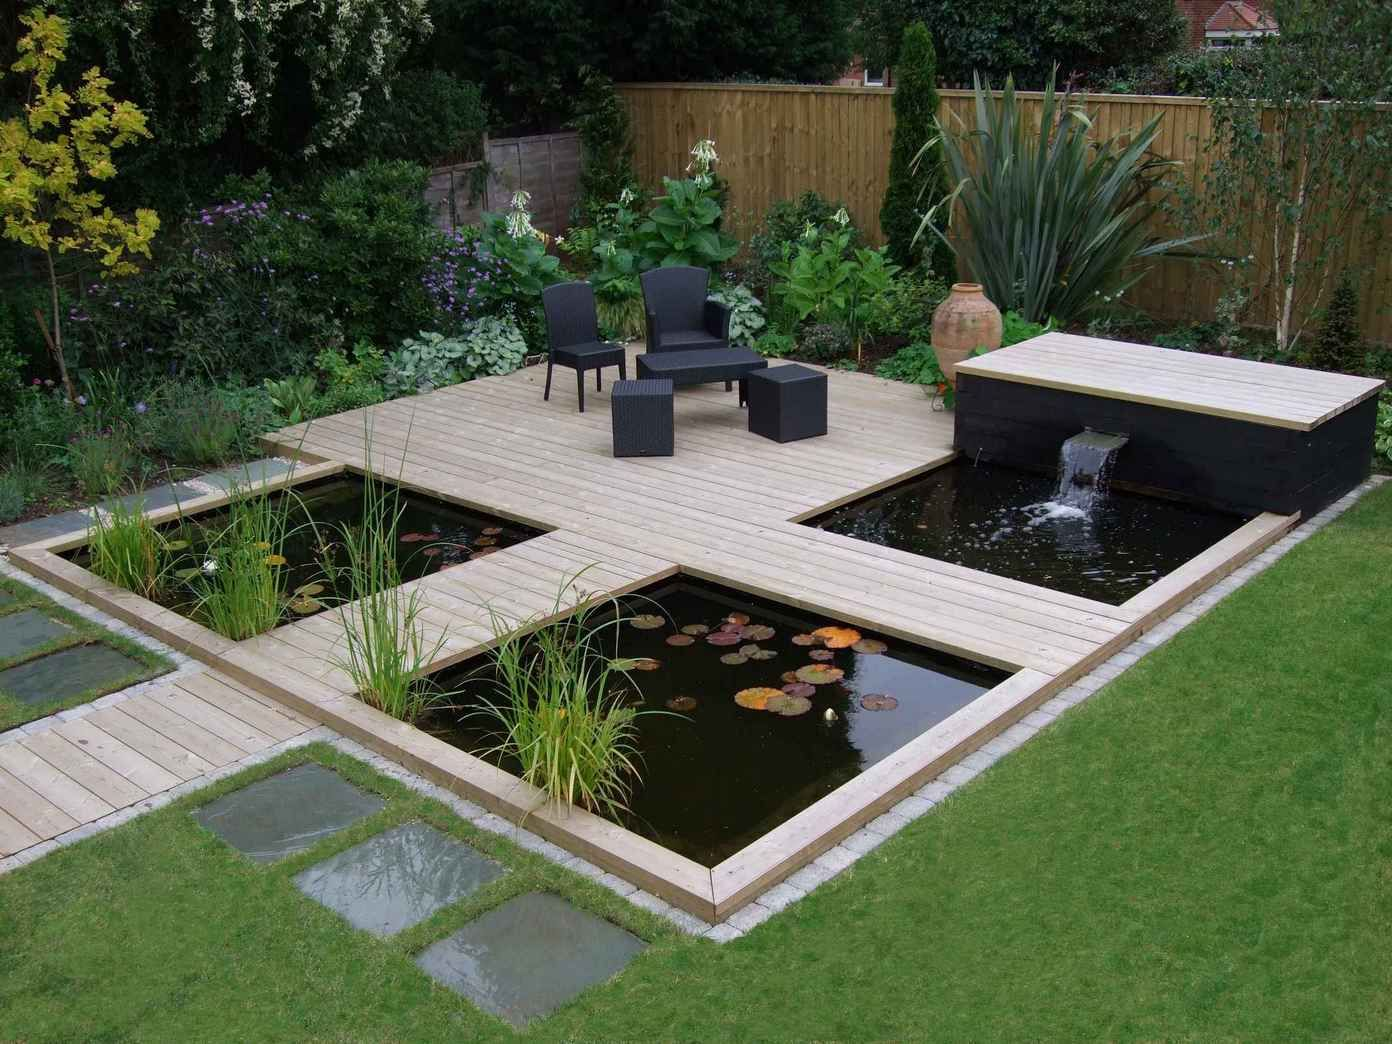 2018 trending 15 garden designs to watch for in 2018 for Koi carp pond design